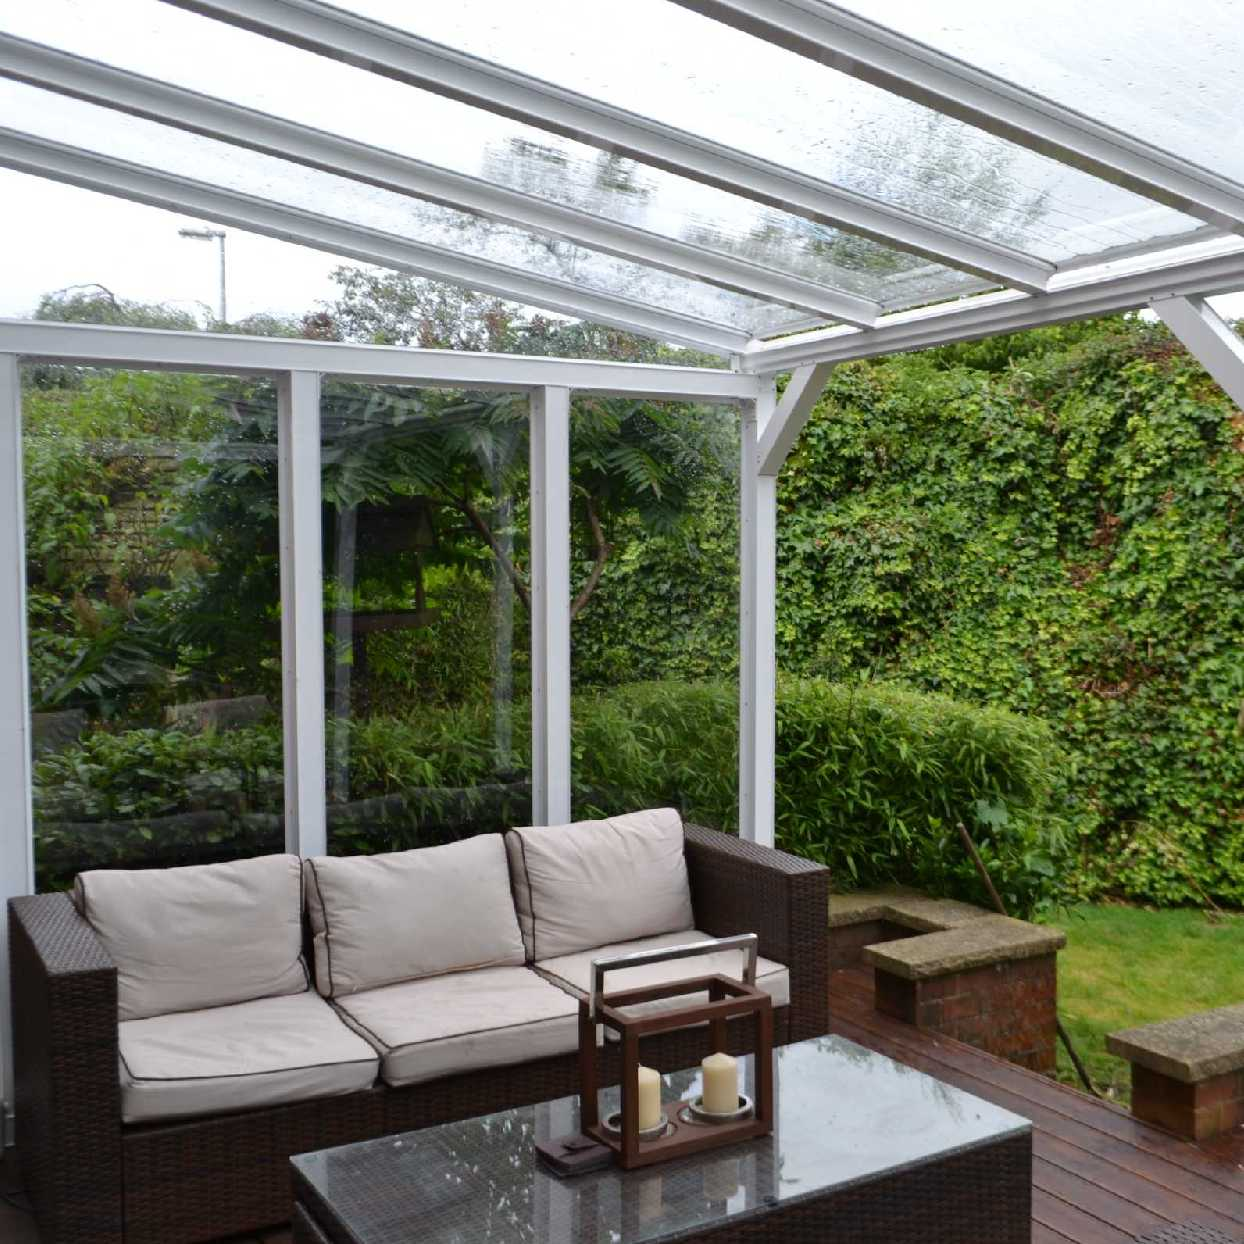 Great selection of Omega Smart Lean-To Canopy with 16mm Polycarbonate Glazing - 4.2m (W) x 2.0m (P), (3) Supporting Posts